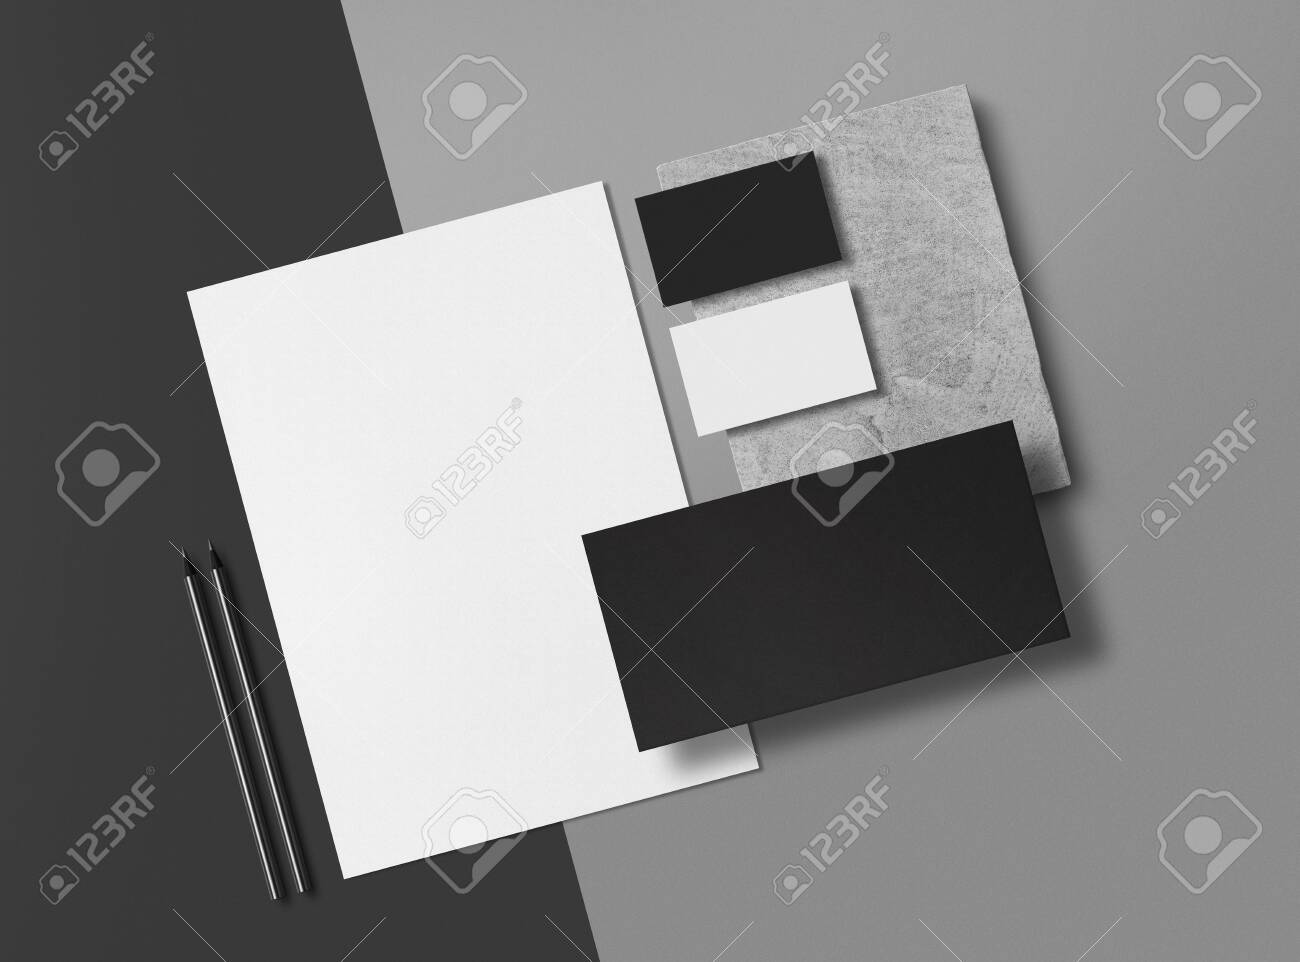 Corporate Identity Branding Mock Up. Set of elements on a gray background. Blank objects for placing your design. 3d illustration. - 150177828